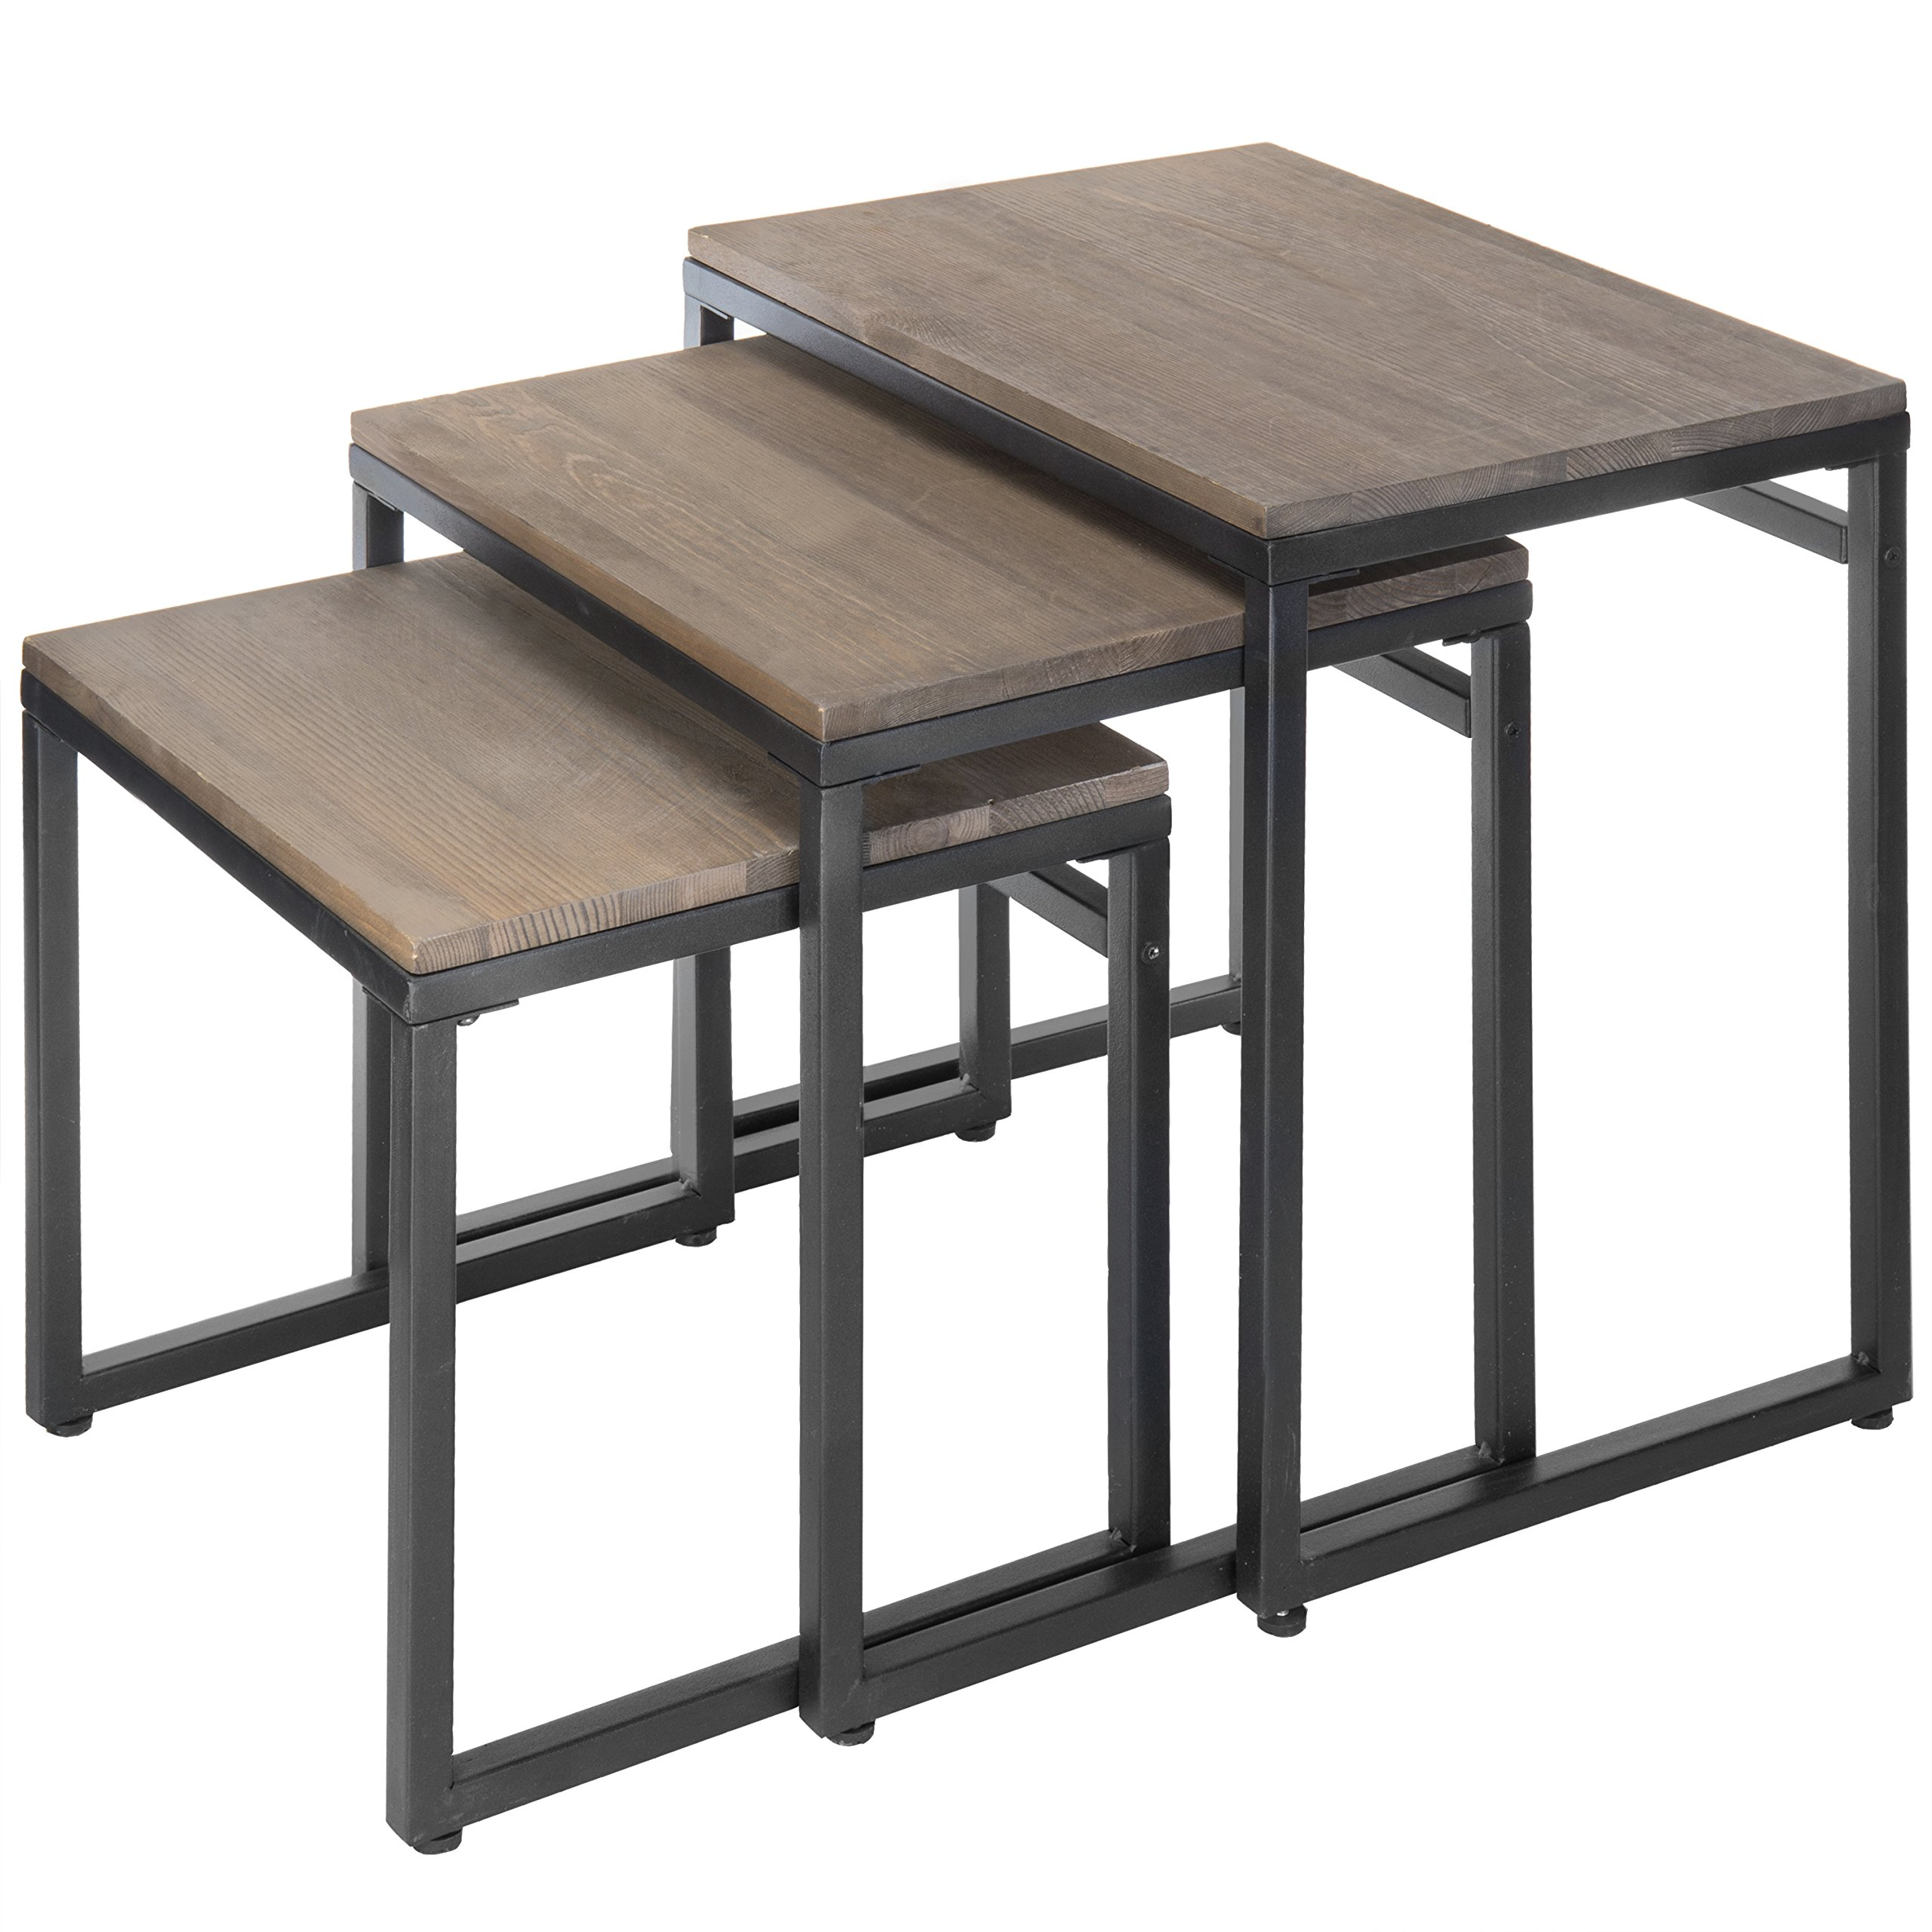 MyGift Set of 3 Brown Wood Nesting End Tables with Black Metal Frame by MyGift